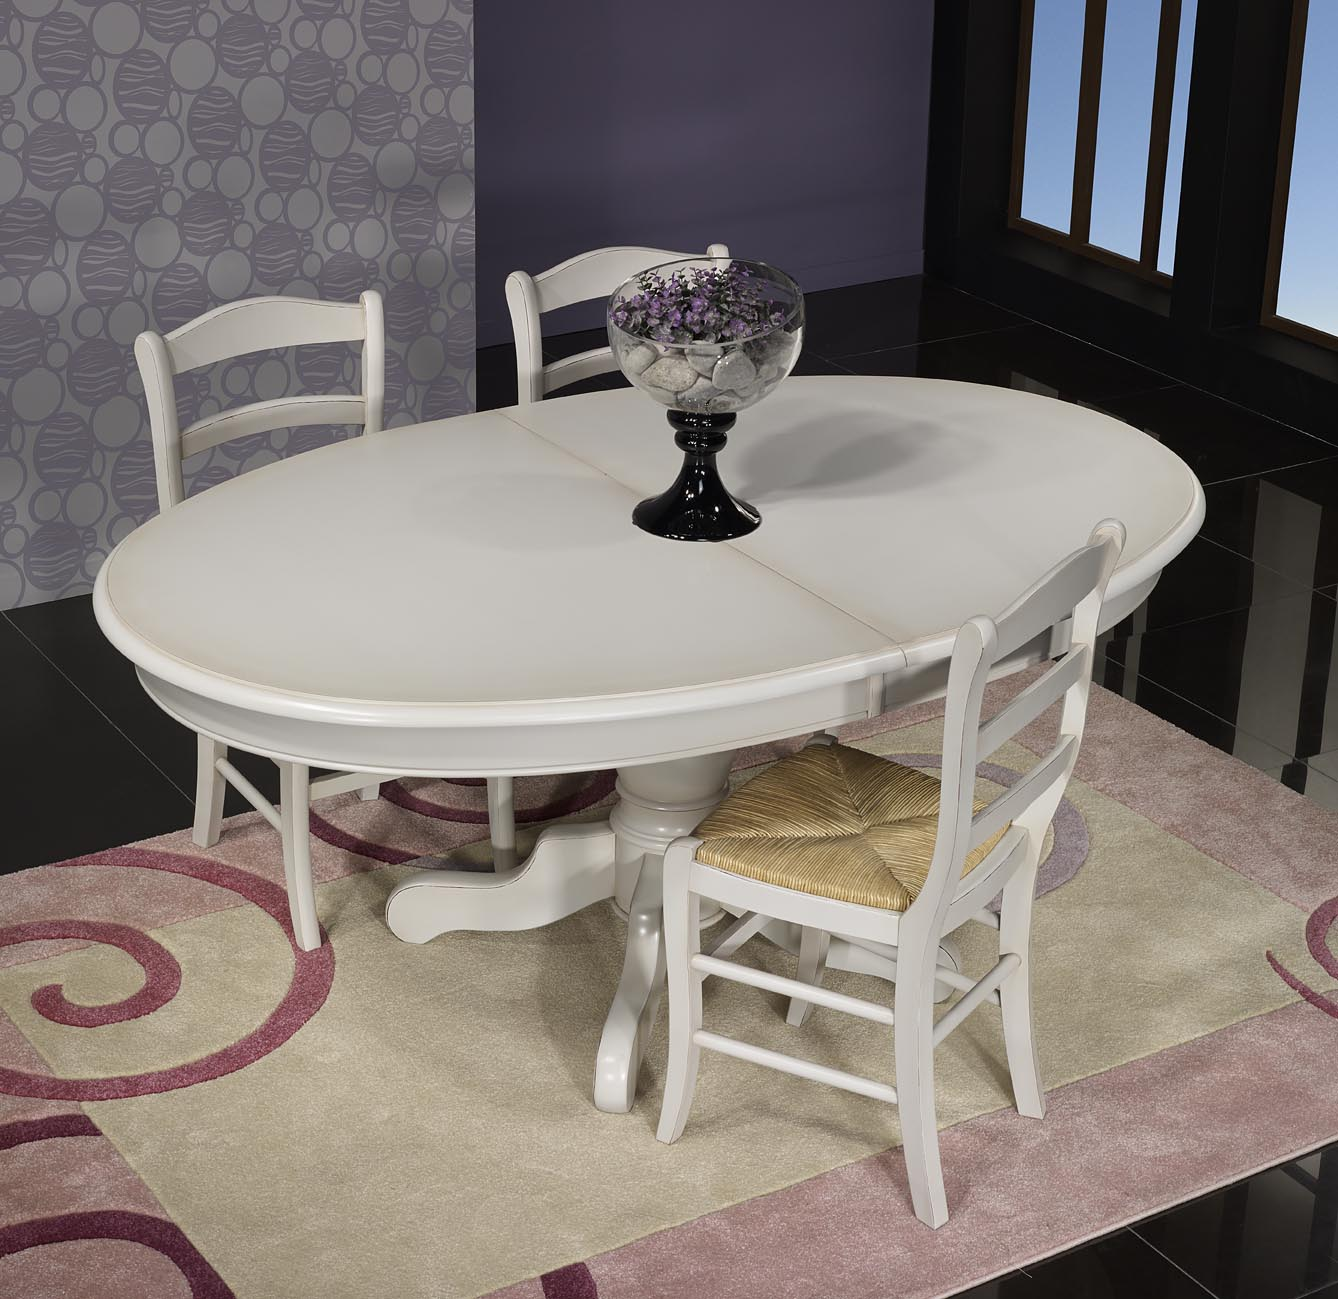 Table ovale pied central delphine en merisier massif de style louis philippe - Table ovale design pied central ...